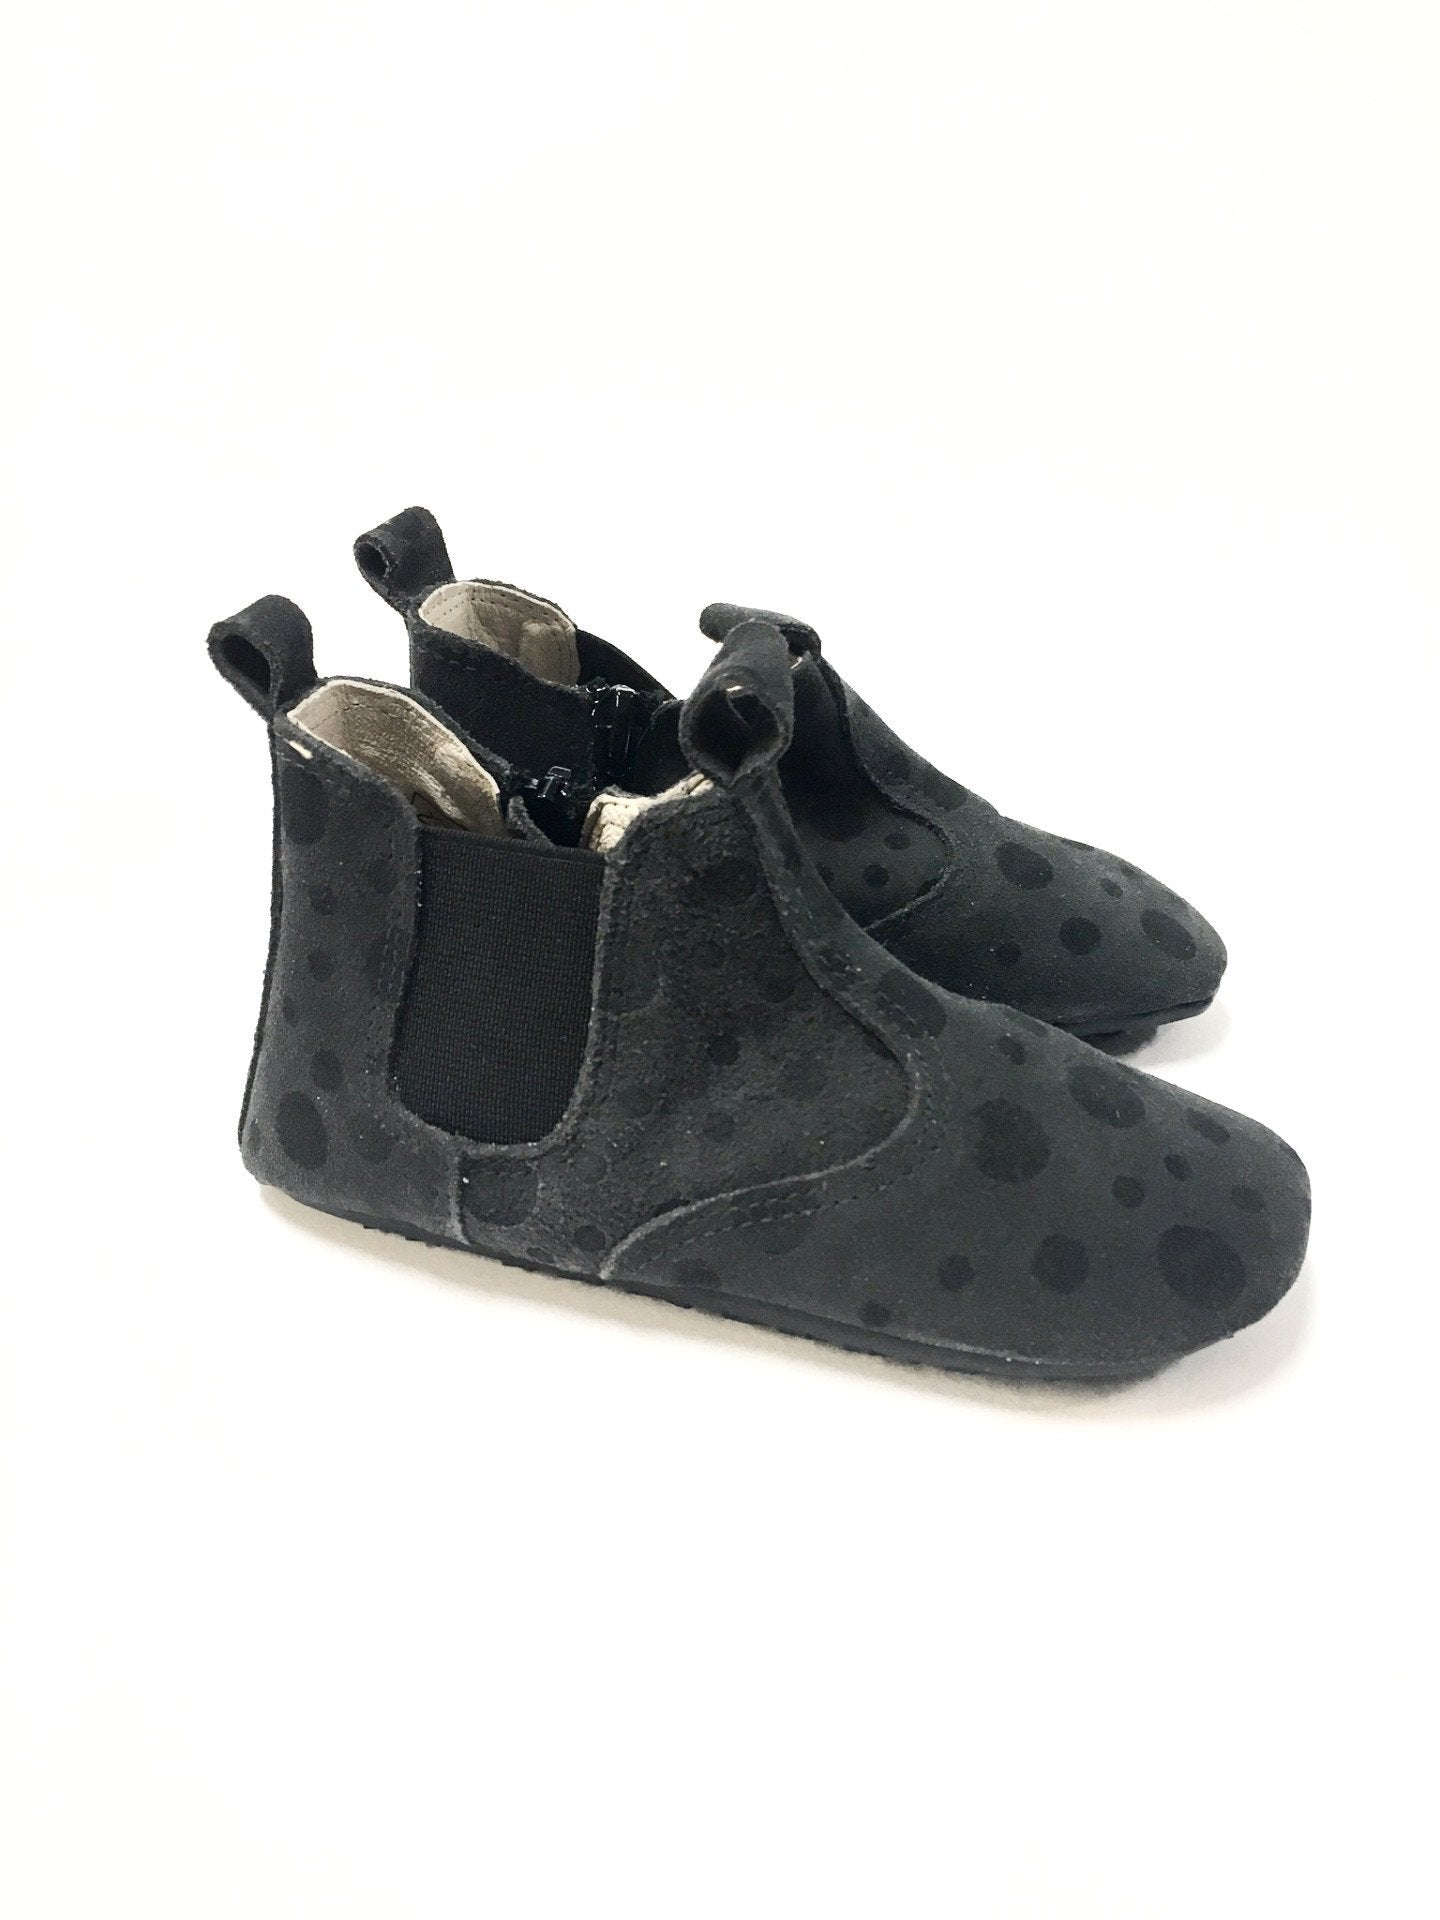 Enfant Gray and Black Slipper-Tassel Children Shoes